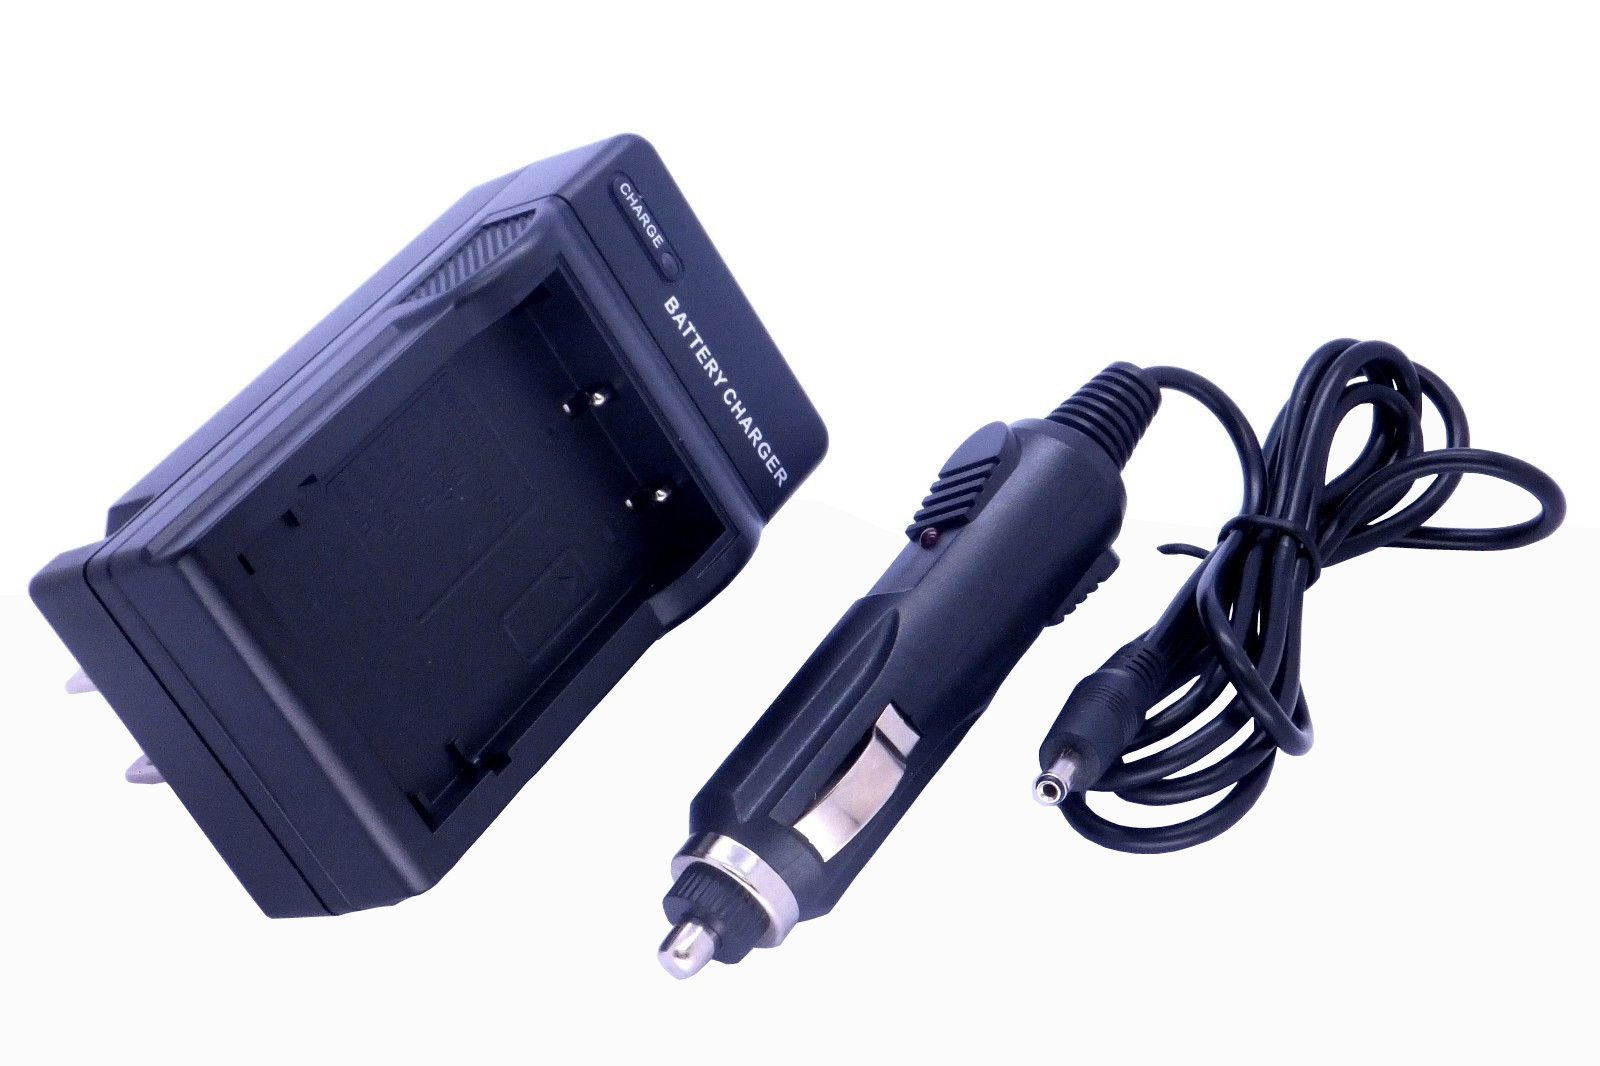 Home / Travel Charger with Car Adapter for Fuji NP-60 Camera/Camcorder (Fuji np40, np60, np95, np120, Samson SLB-0837, Panasonic S004E, Kodak K5001) by CyberTech